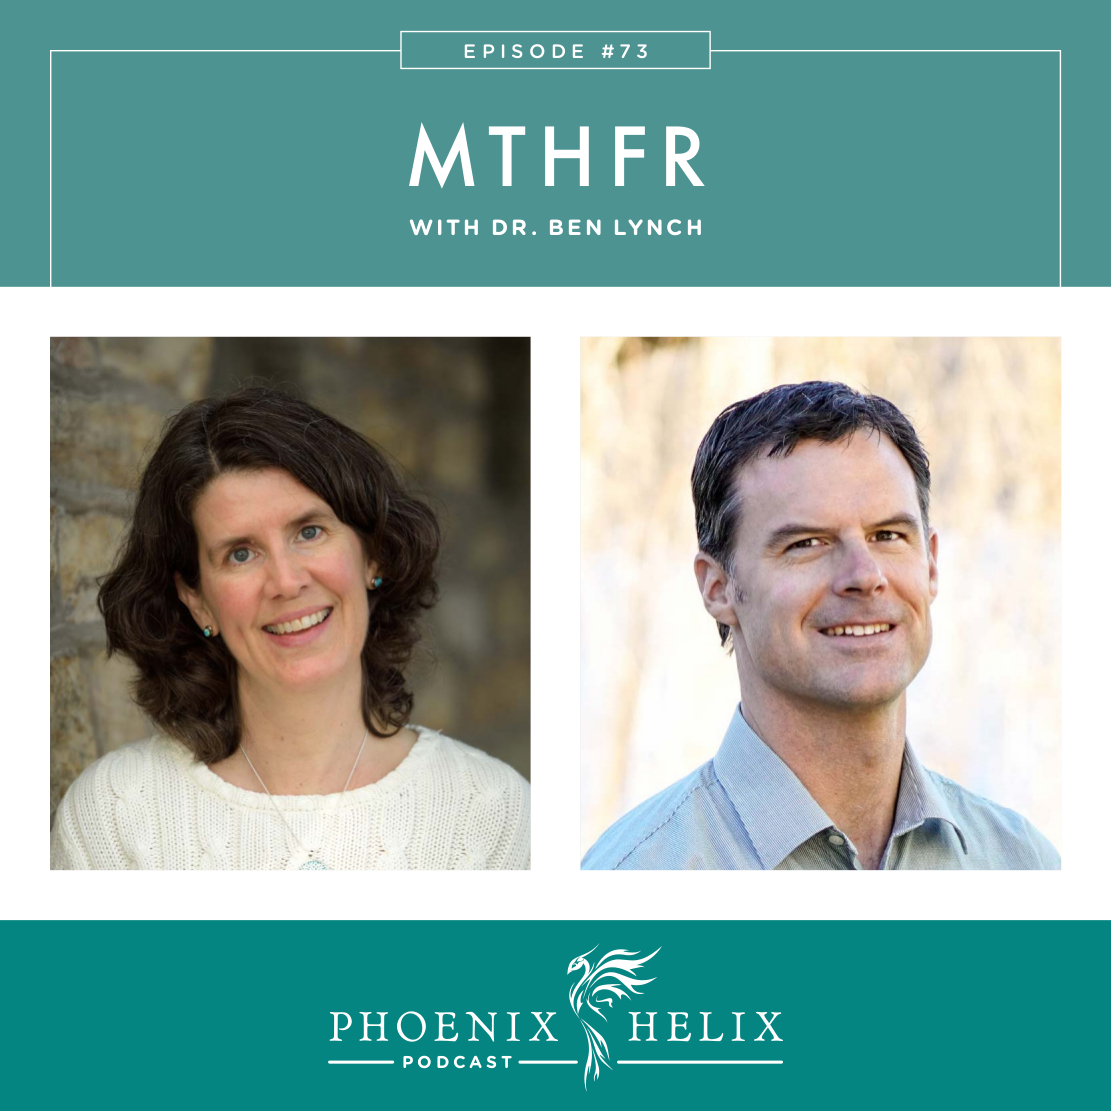 MTHFR with Dr. Ben Lynch | Phoenix Helix Podcast